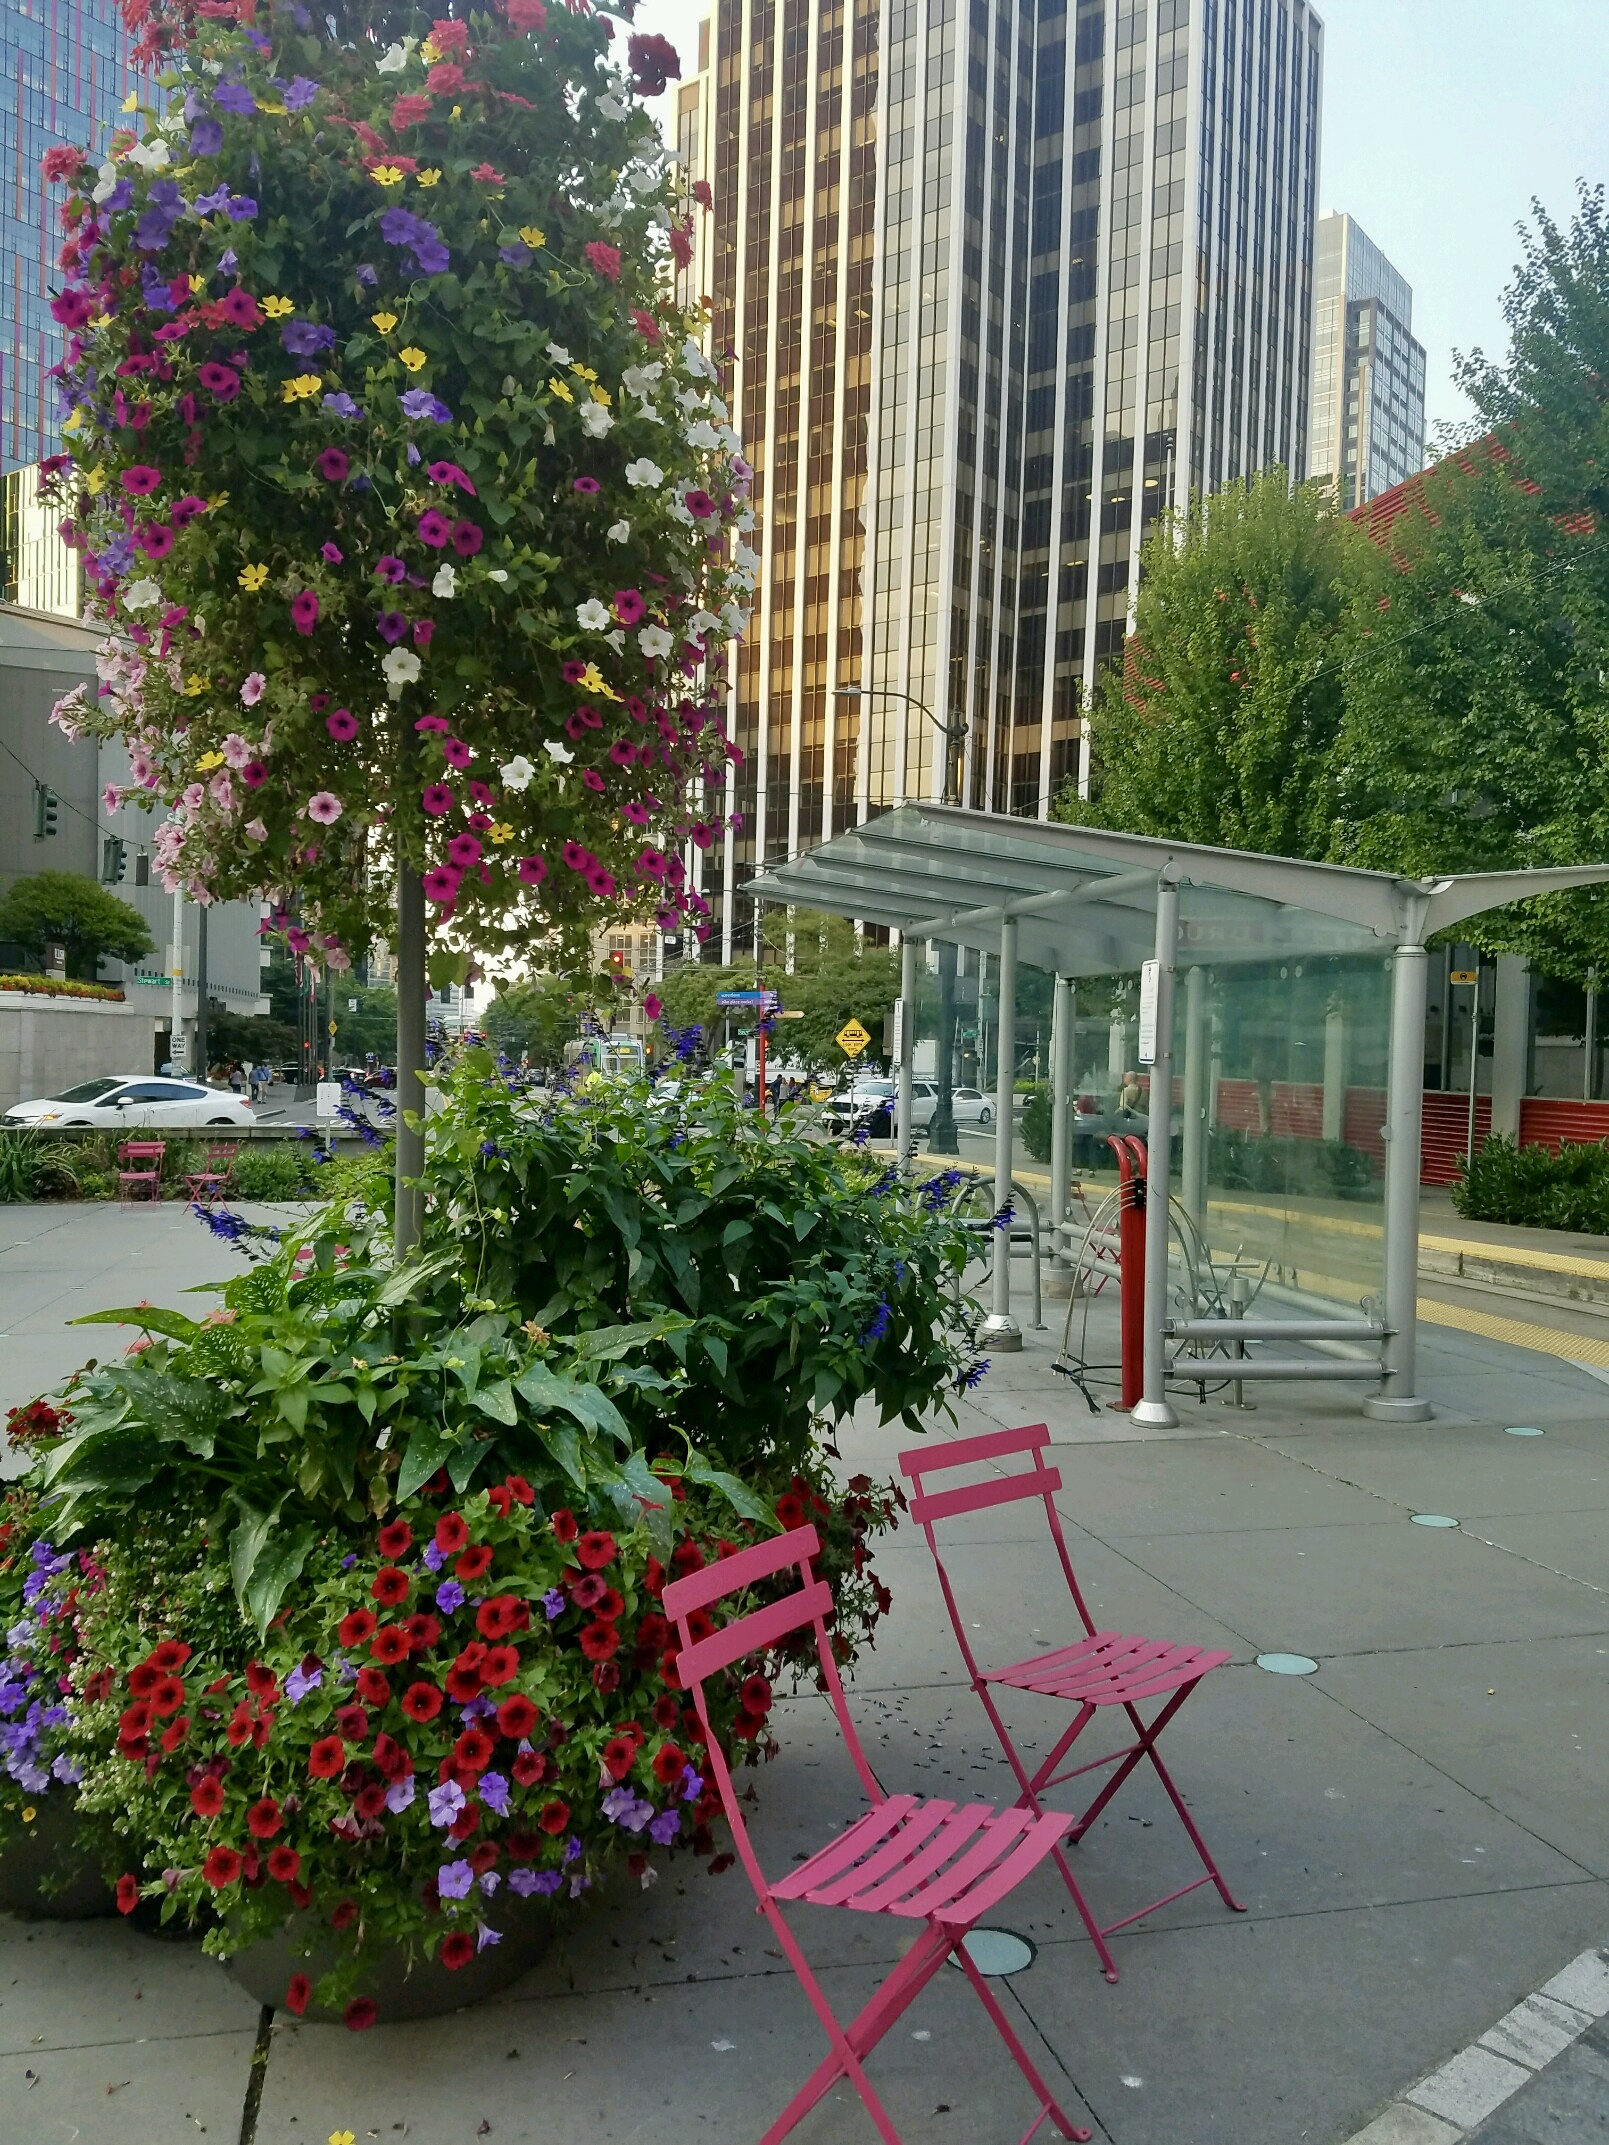 Pink chairs, Seattle